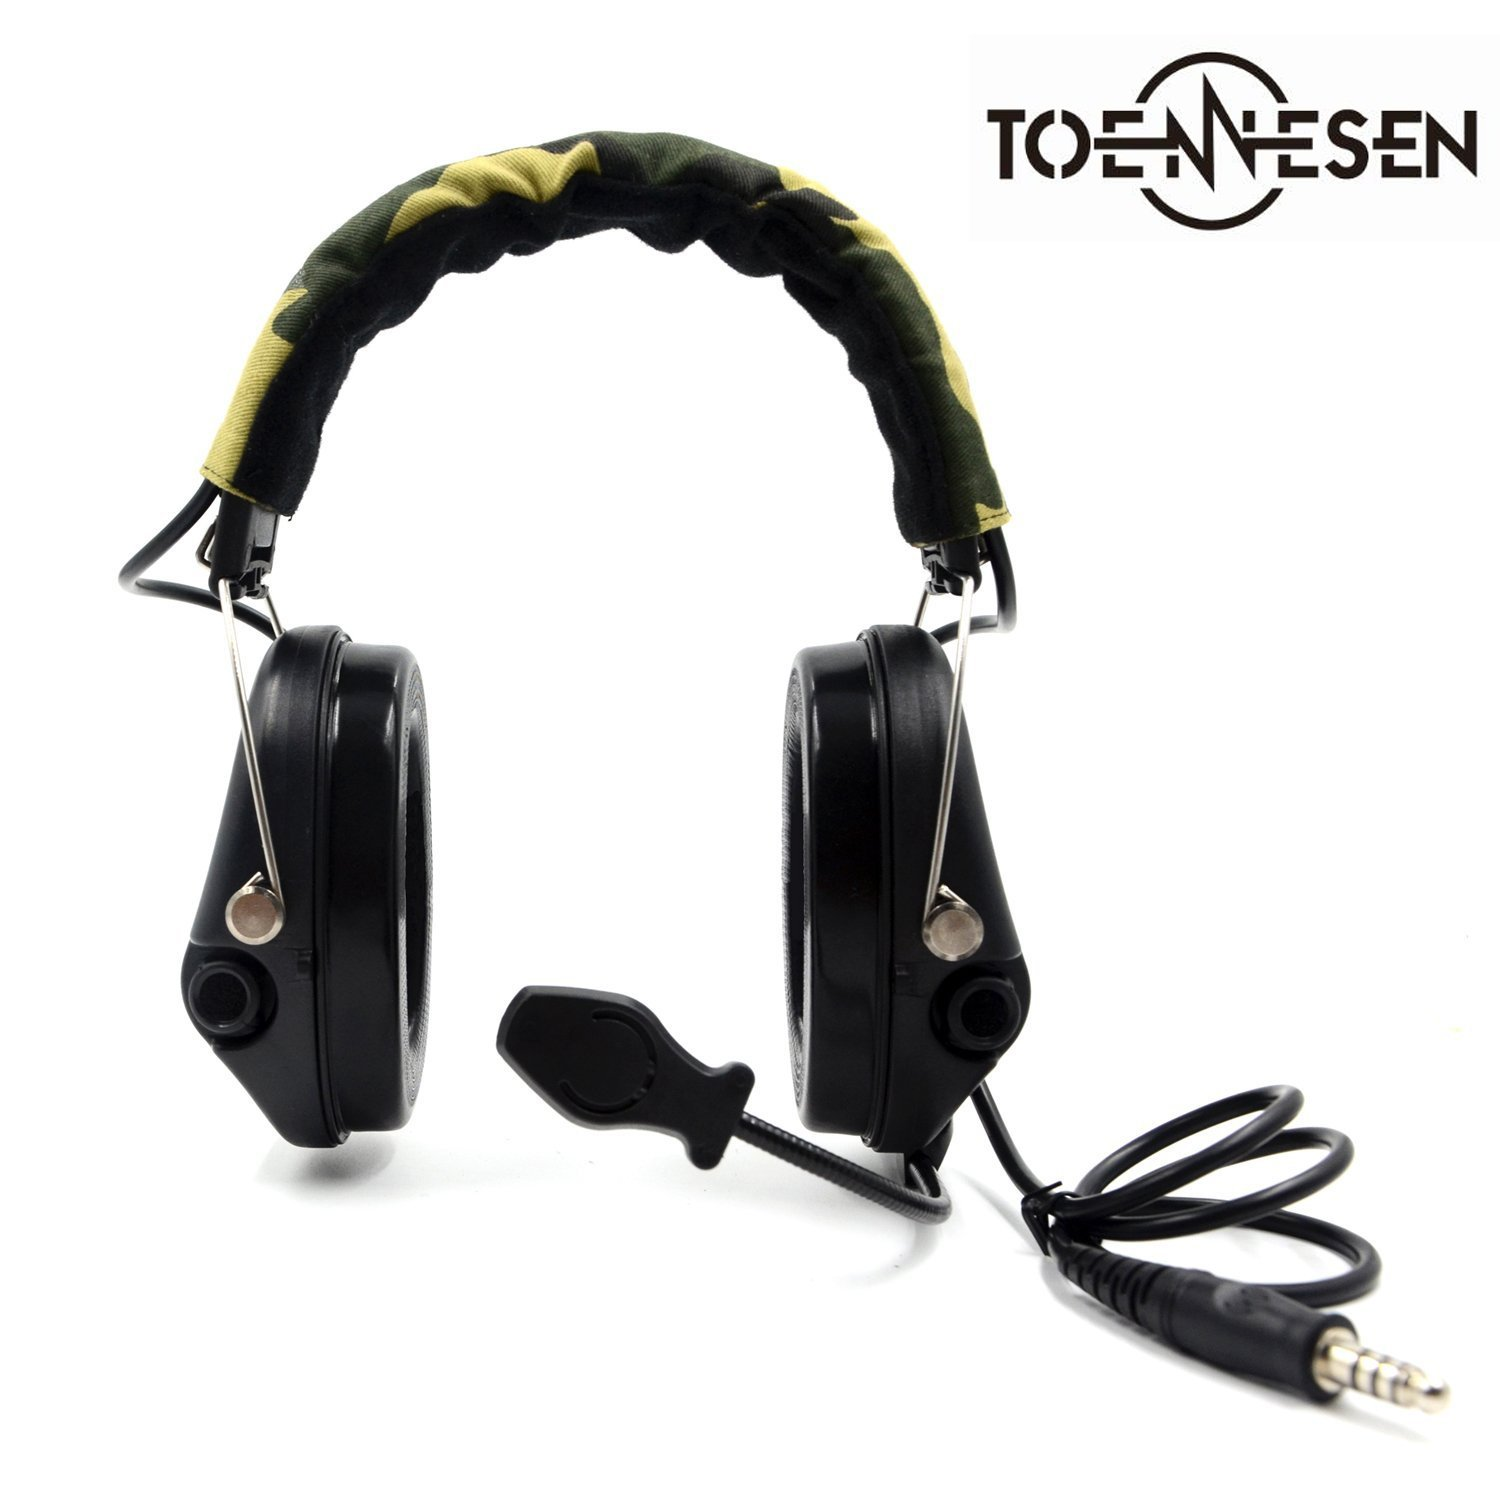 Electronic Earmuff Hearing Protection Tactical Headset with Camo-band, Black Cups for Hunting and Shooting by TOENNESEN